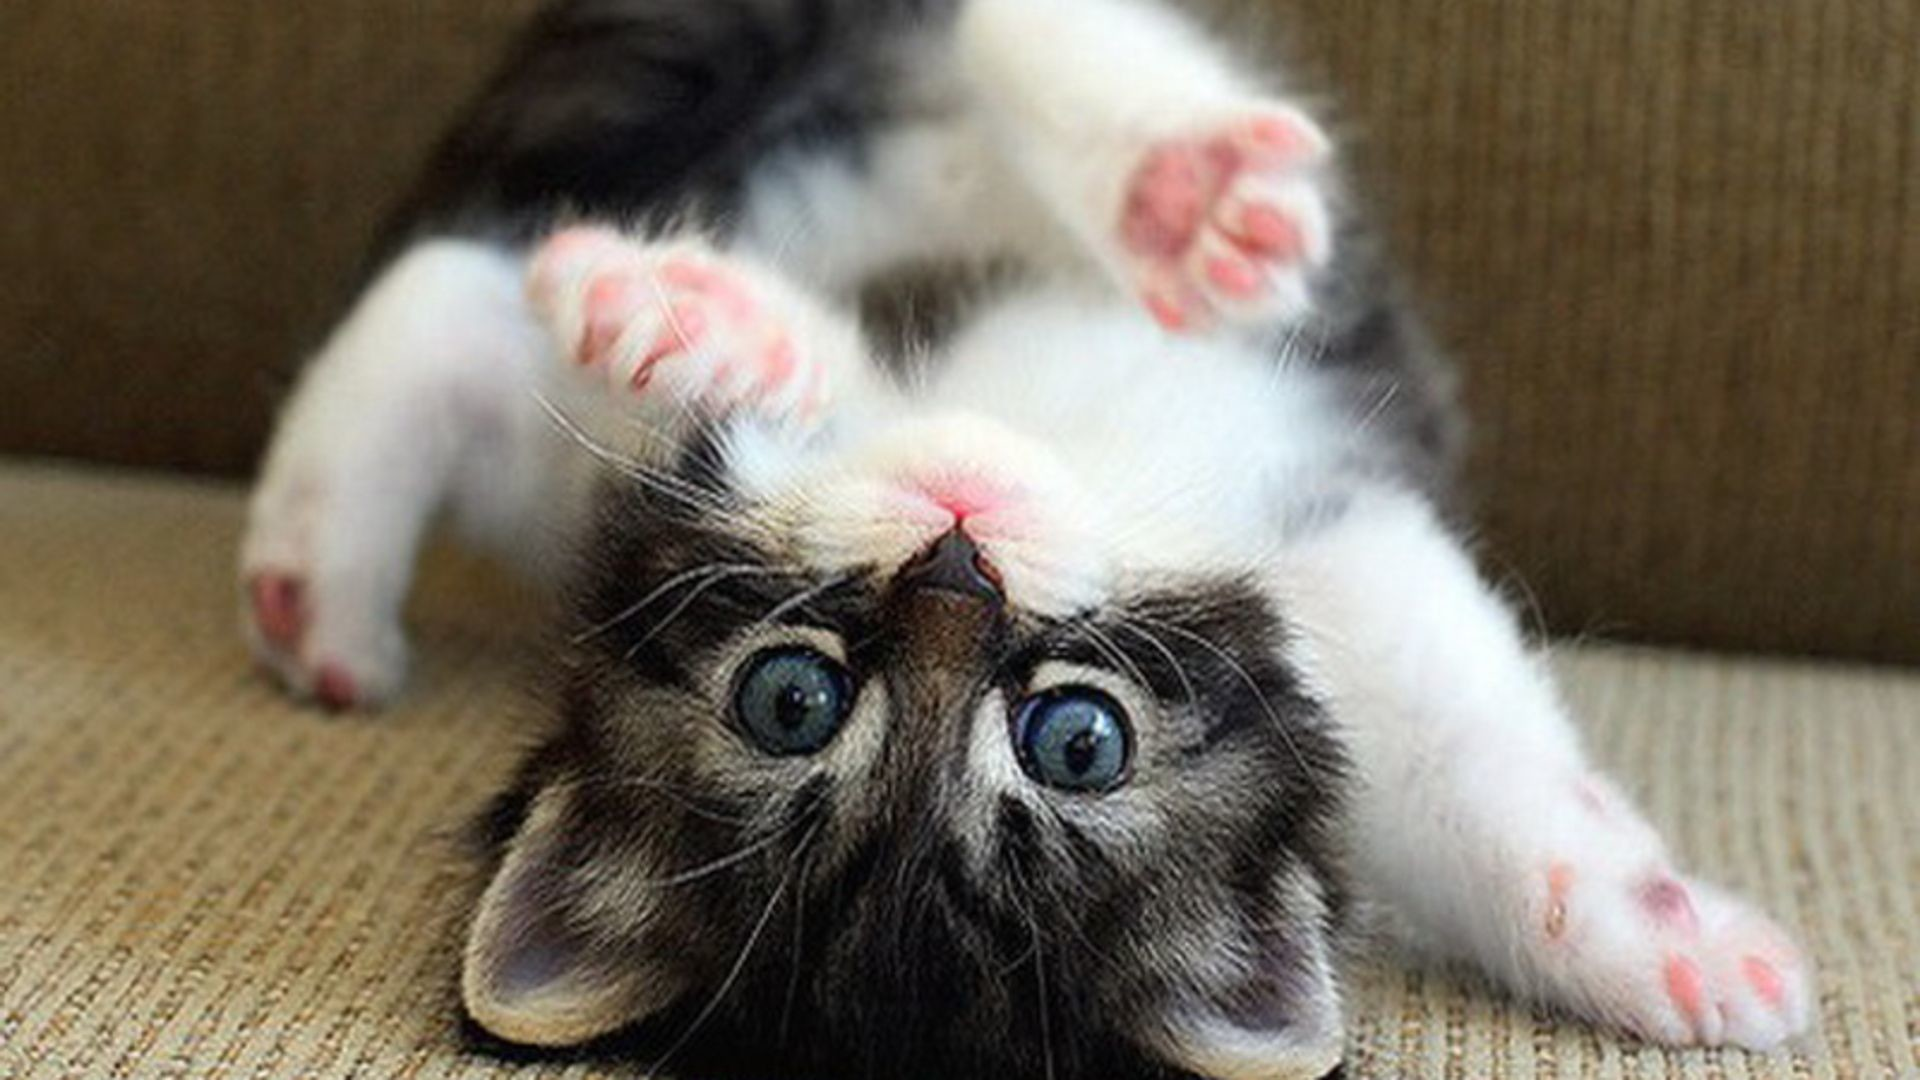 Res: 1920x1080, Funny Kitten Wallpaper HD - Free Download Wallpaper, Pictures .